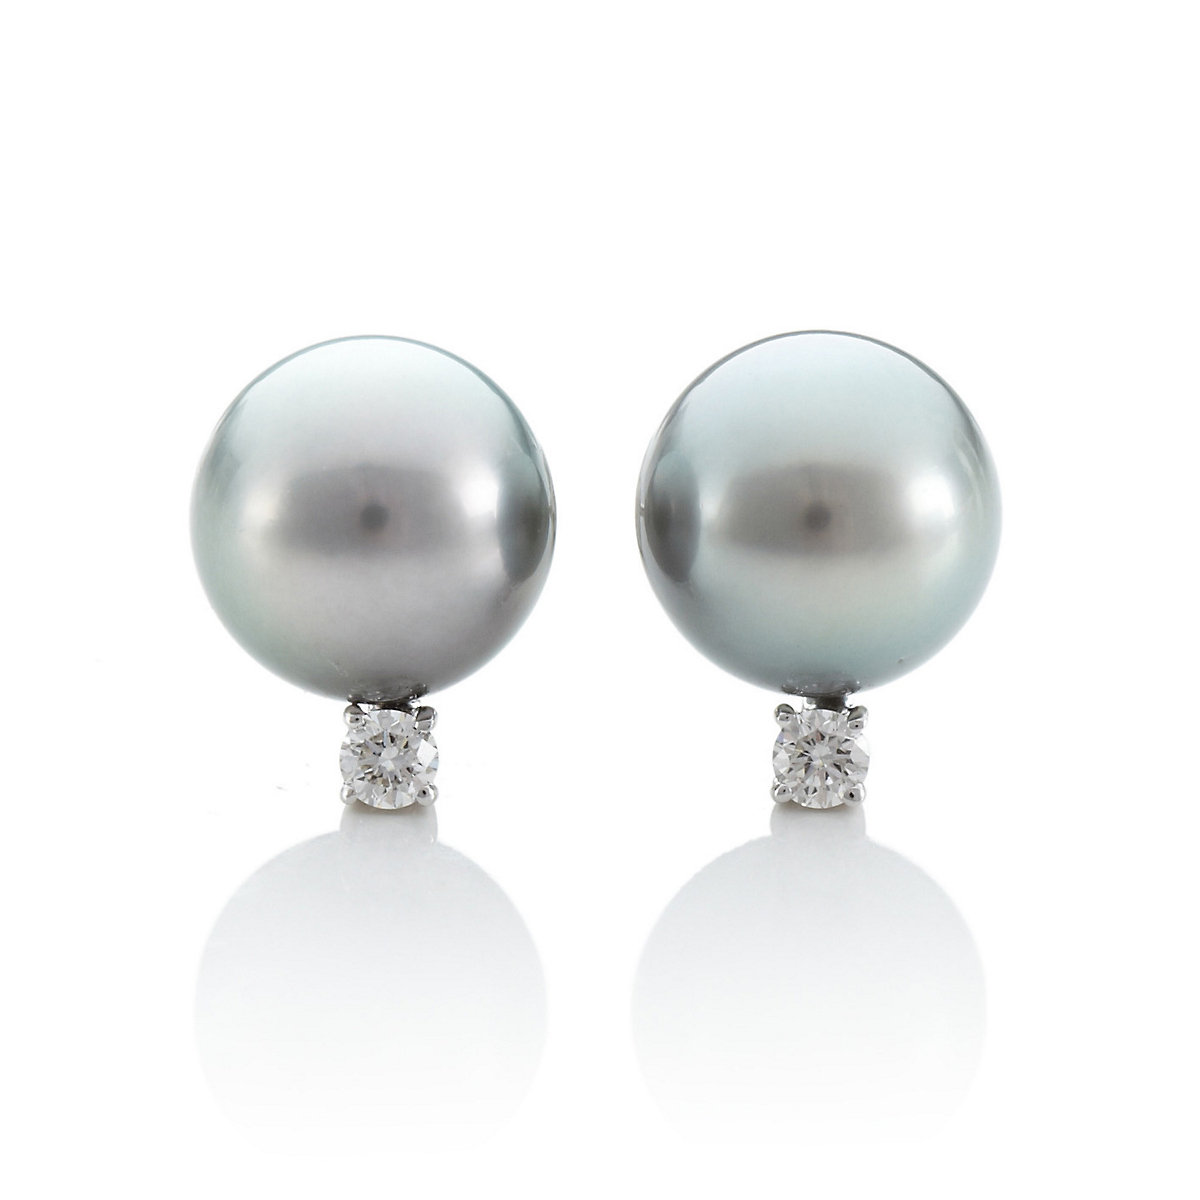 Gump's Tahitian Cultured Pearl and Diamond Earrings